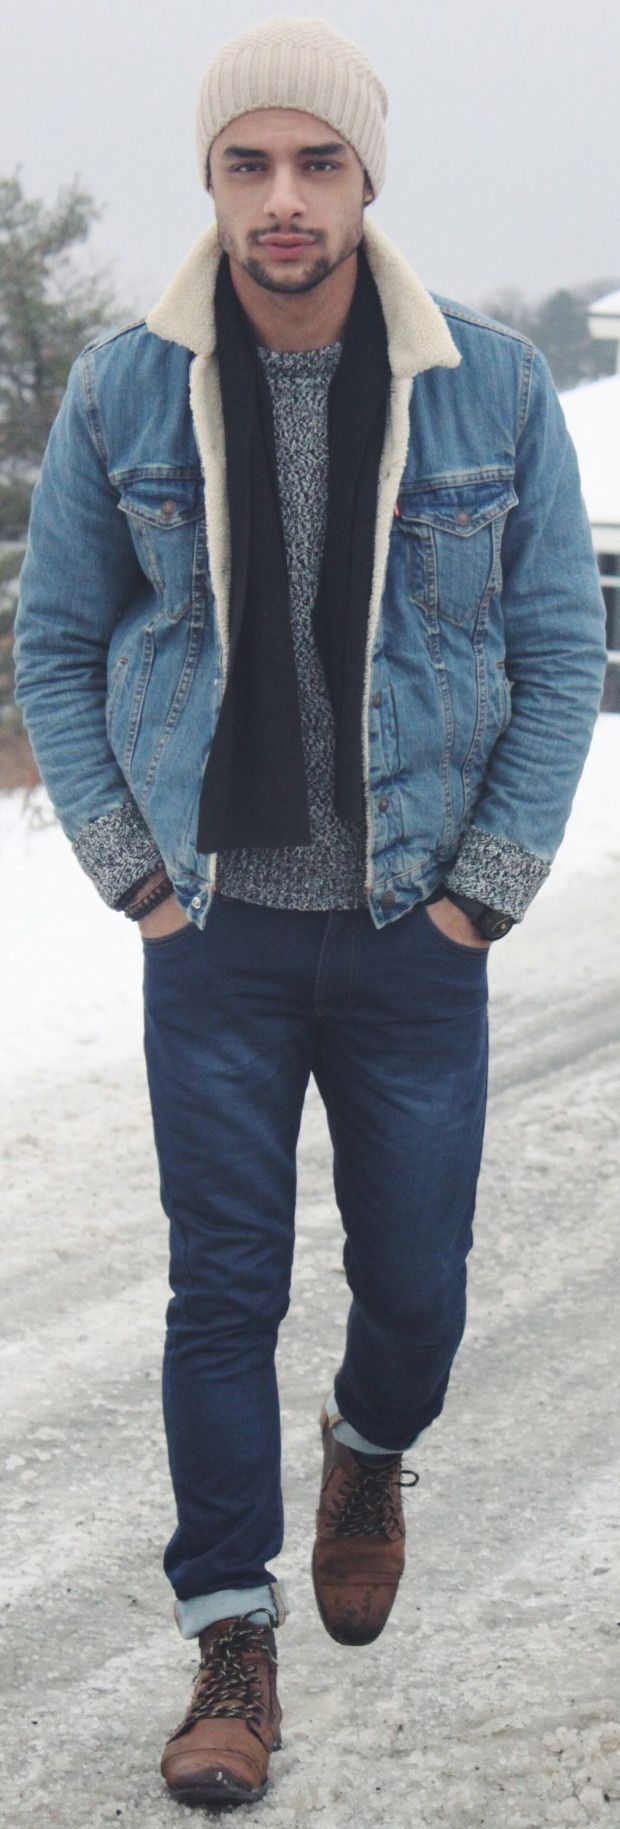 1000  ideas about Mens Winter Jackets on Pinterest | Mens winter ...